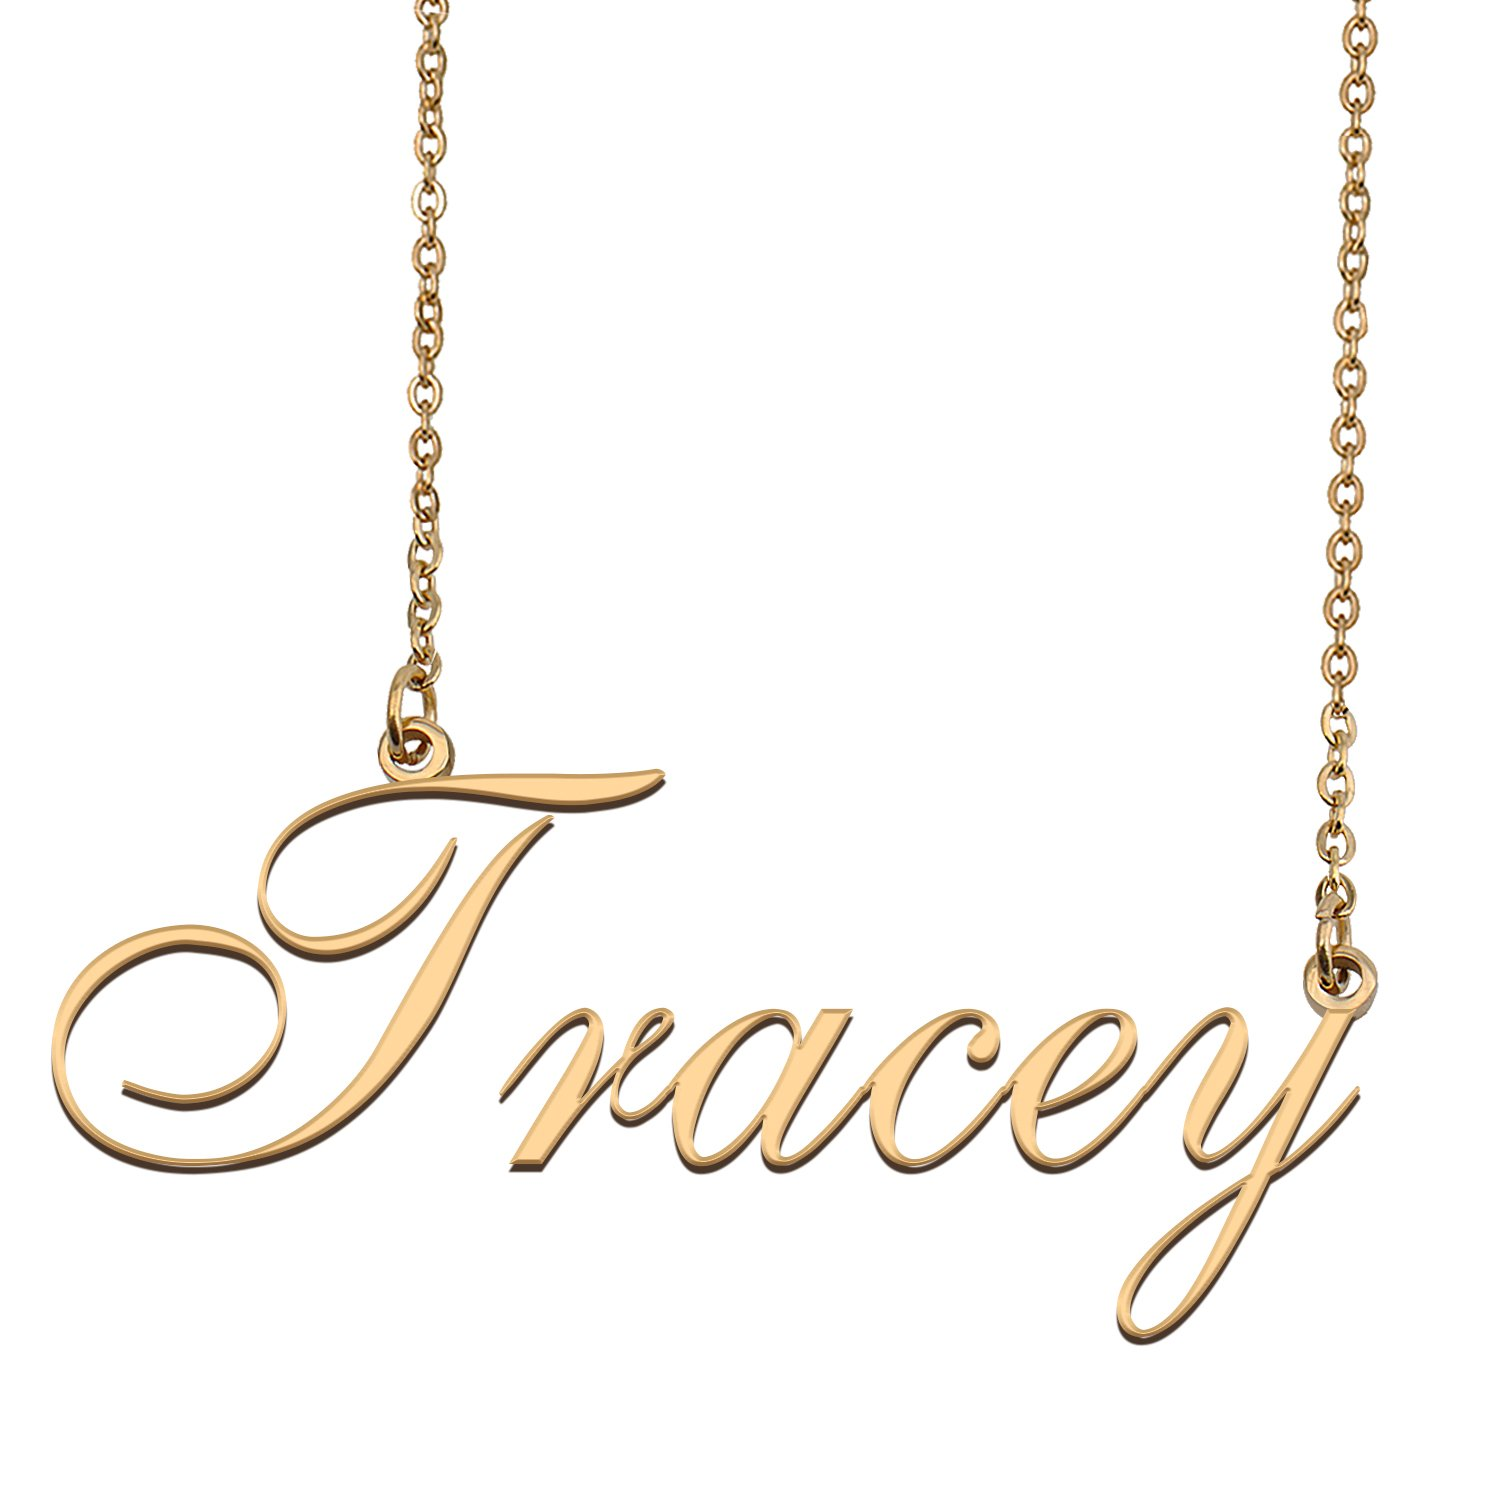 Custom Personalized Name Necklace in Golden Silver for Women Tracey